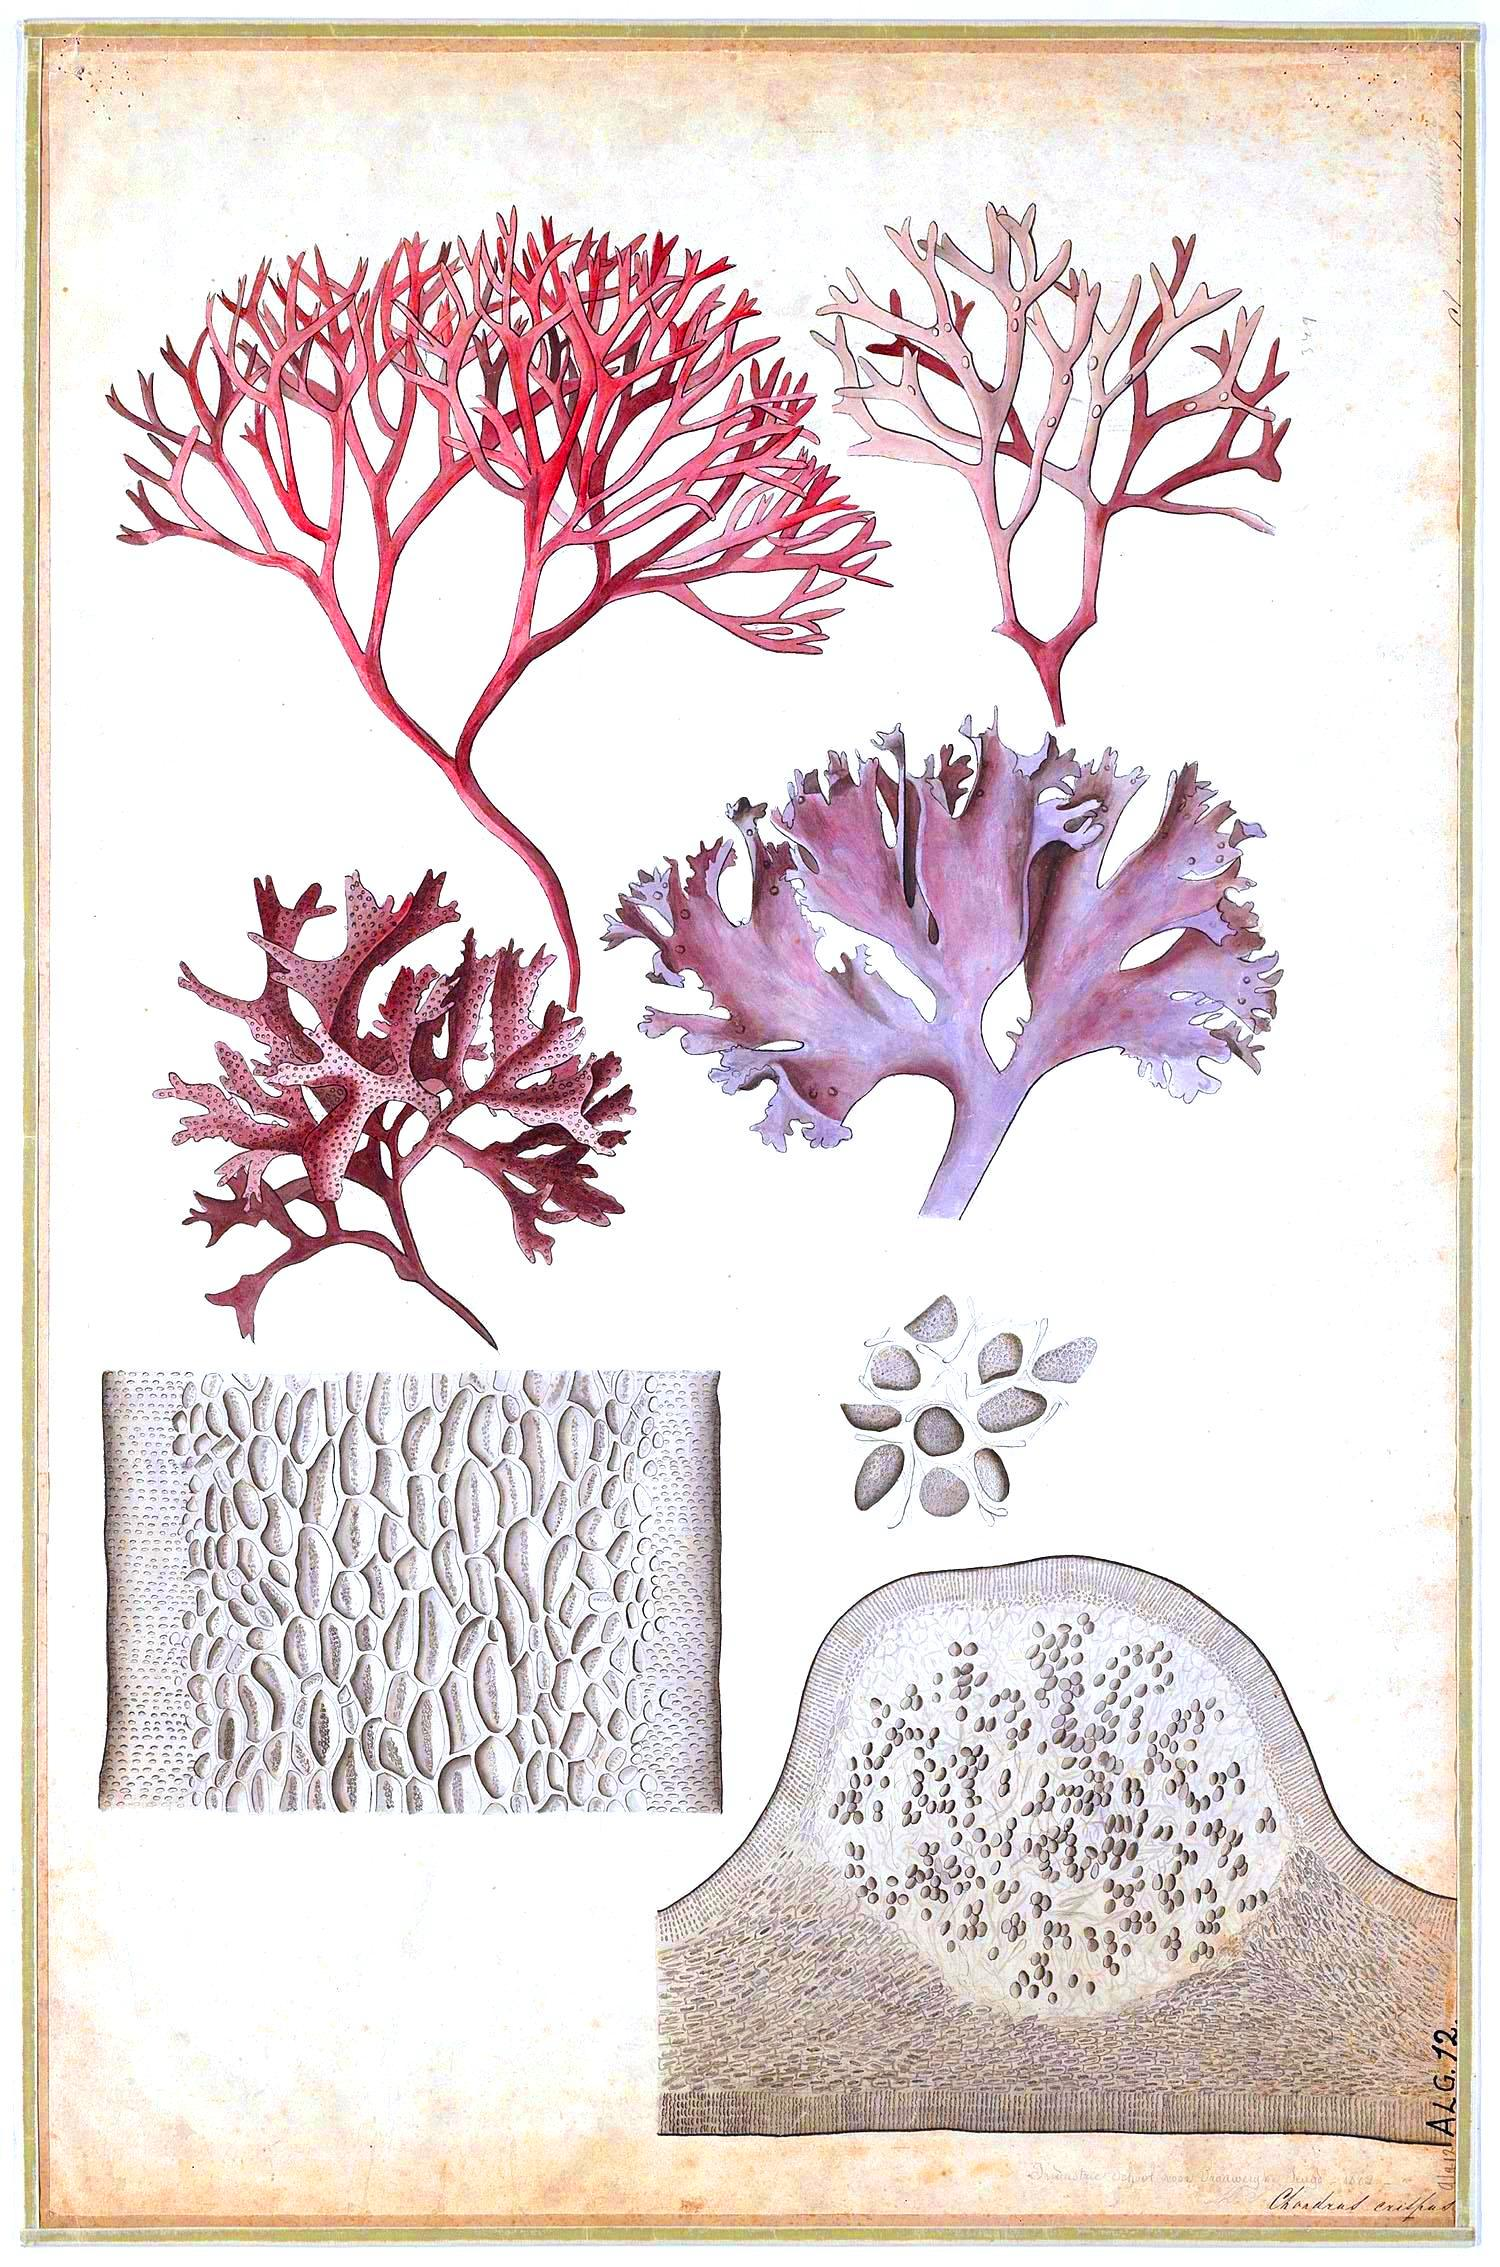 Displaying 17 gt images for seaweed scientific illustration